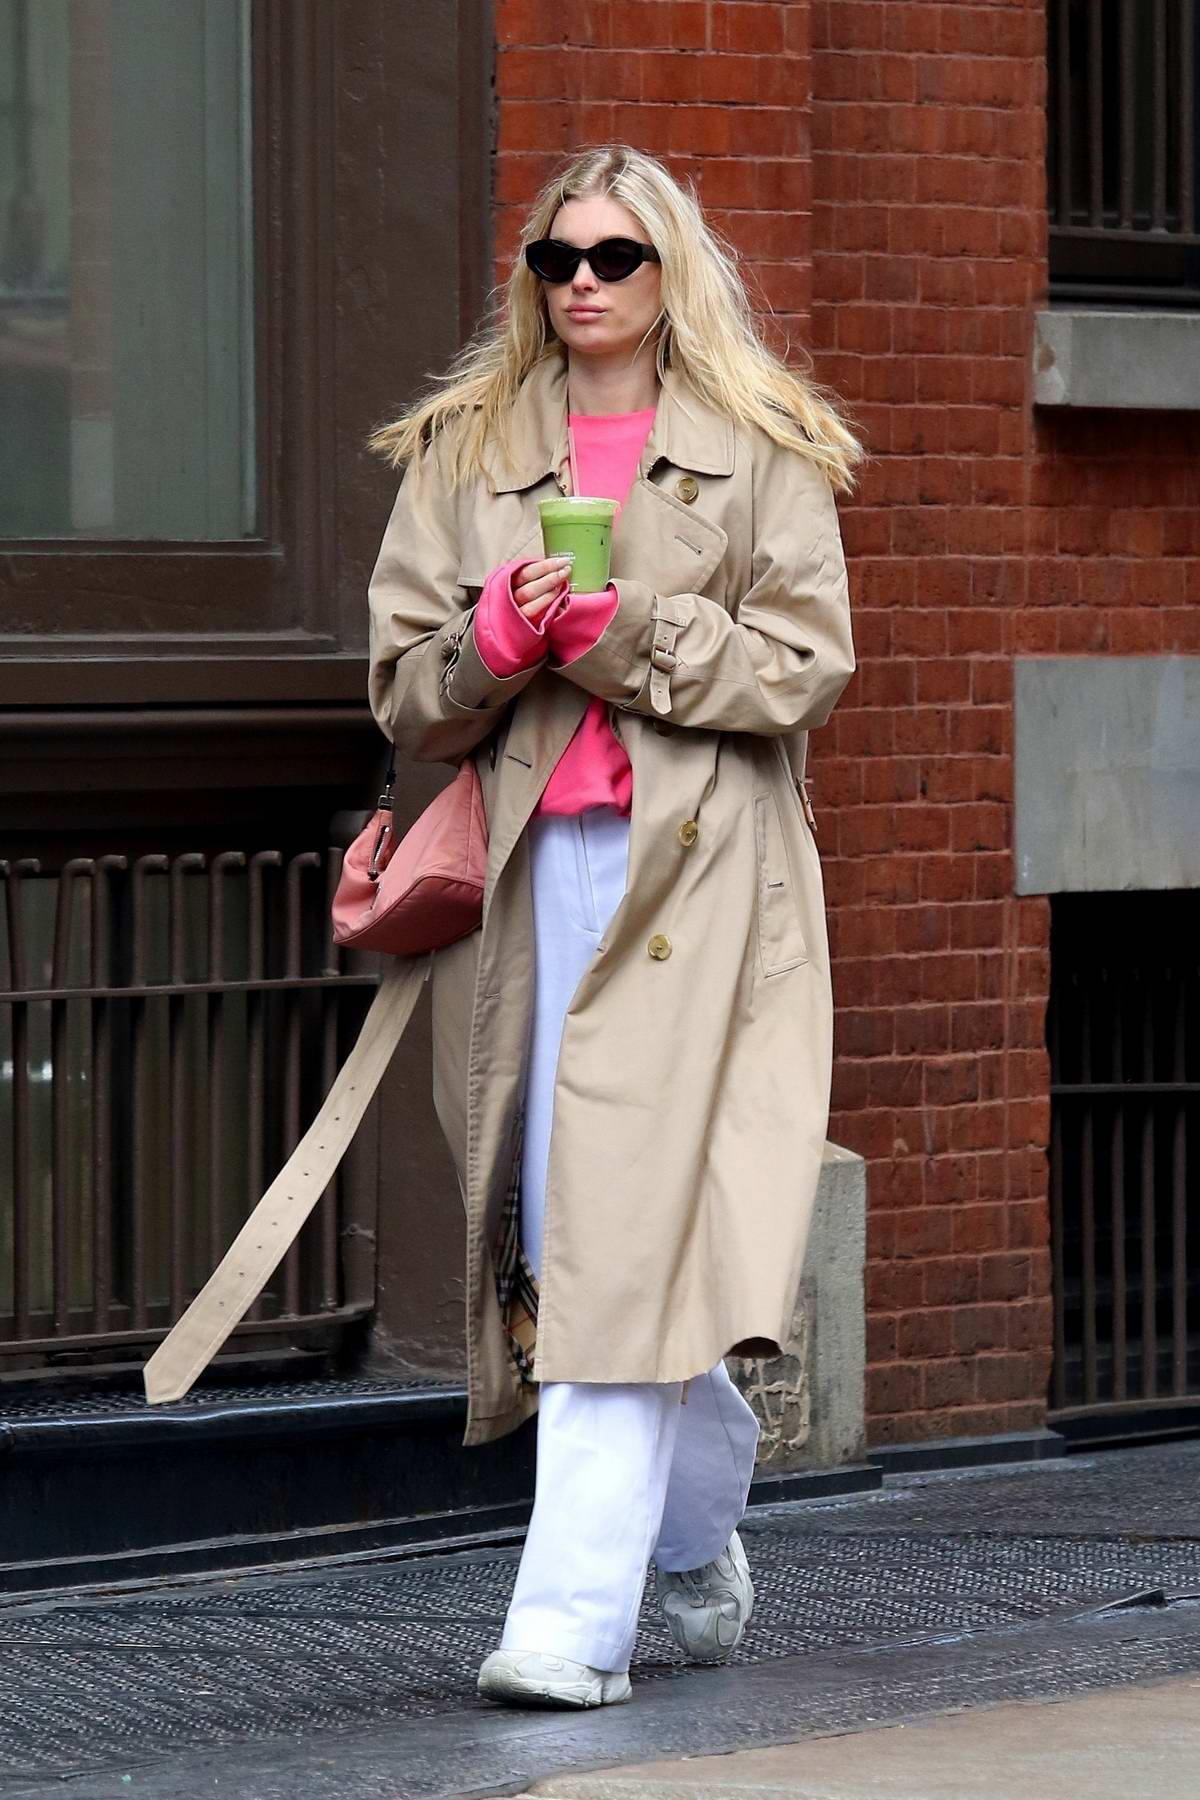 Elsa Hosk grabs a green smoothie as she steps out on a windy day in Manhattan, New York City